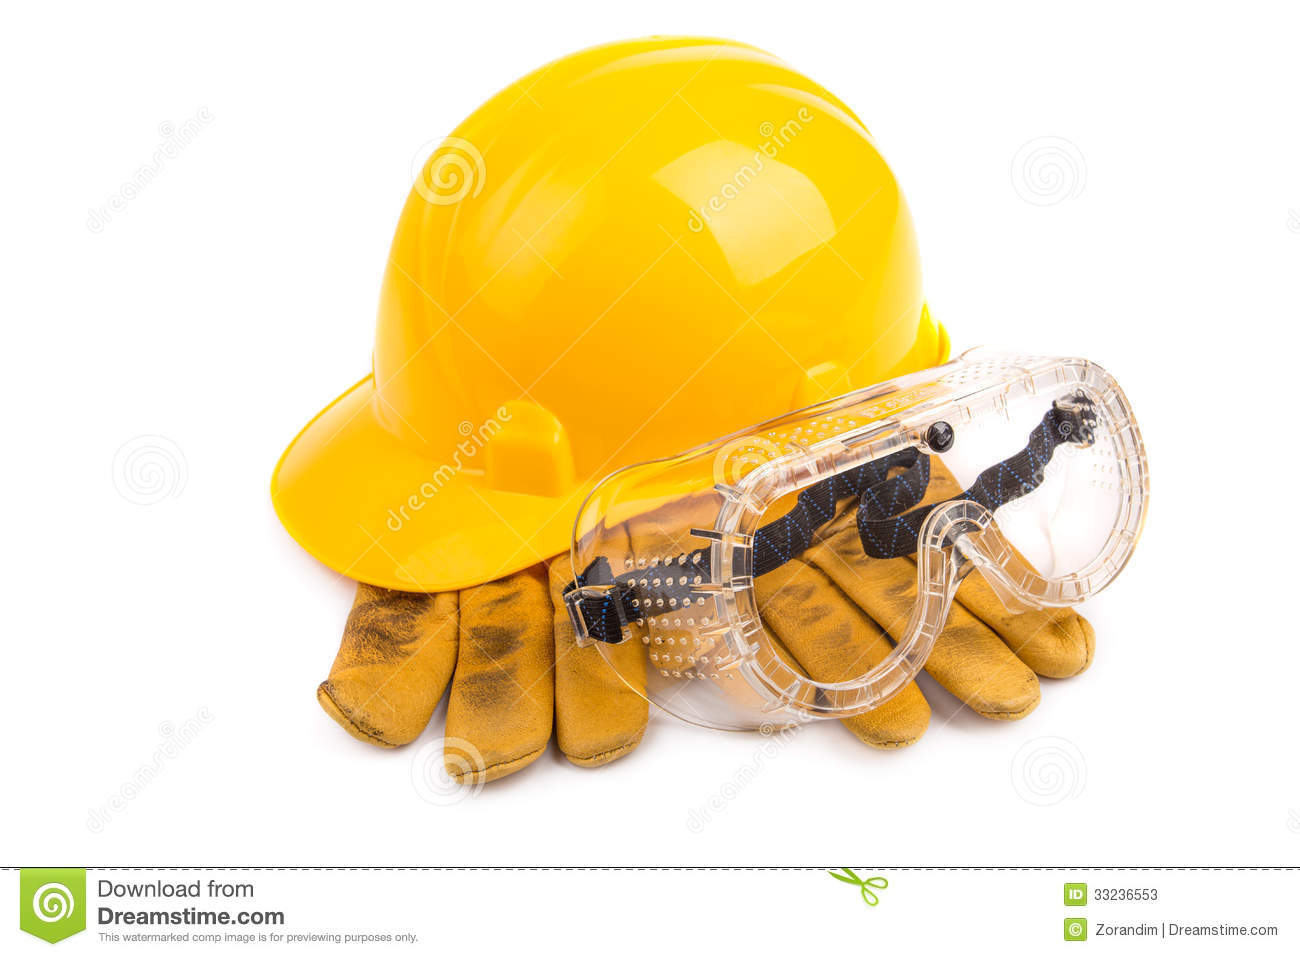 Safety Equipment Stock Photos - Image: 33236553